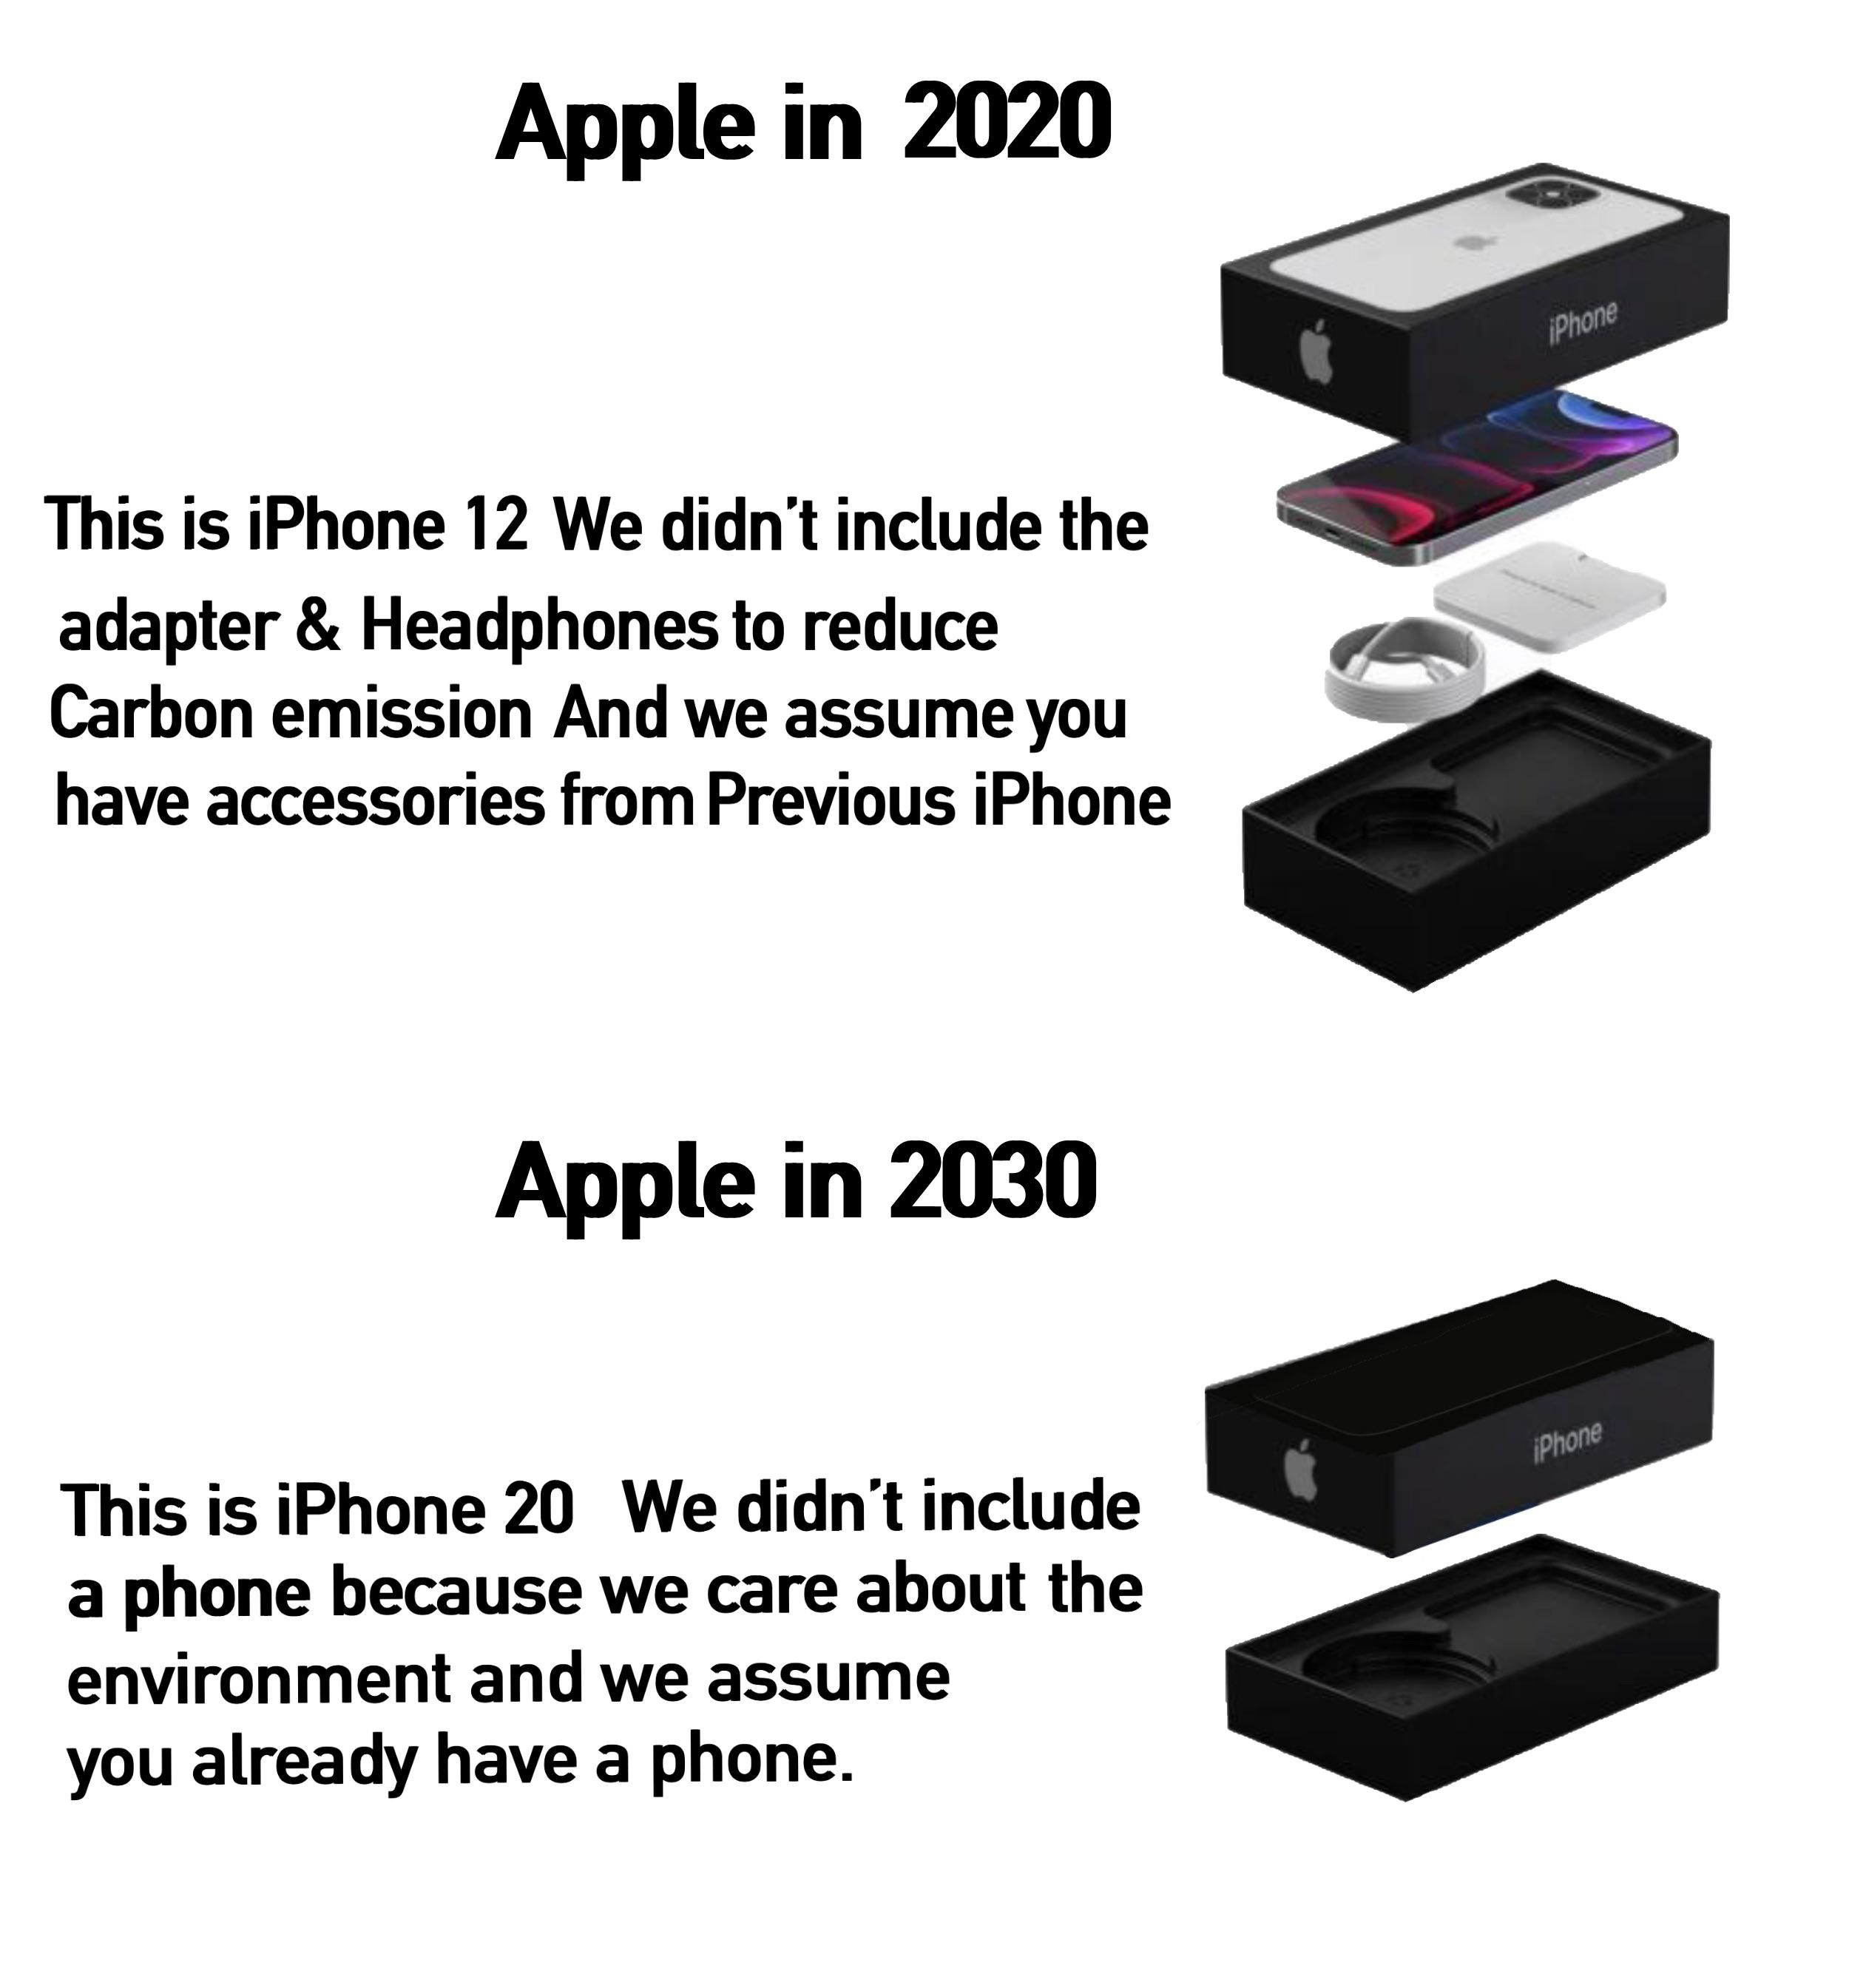 Most advanced iPhone ever